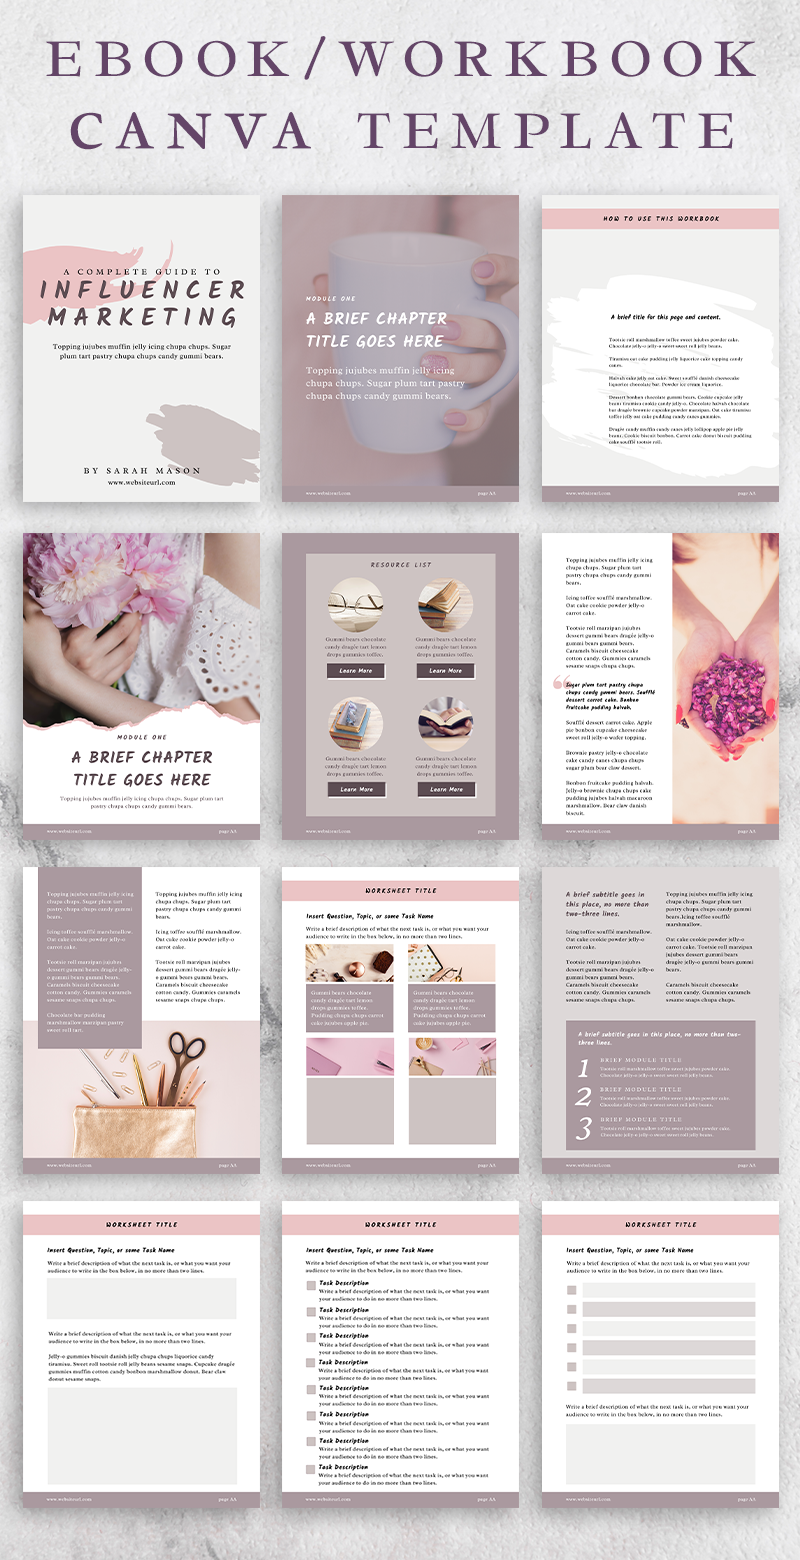 Sandy Canva Ebook And Workbook Template With Content Worksheet Checklist And Resources Page Templates In 2020 Ebook Template Workbook Template Workbook Design